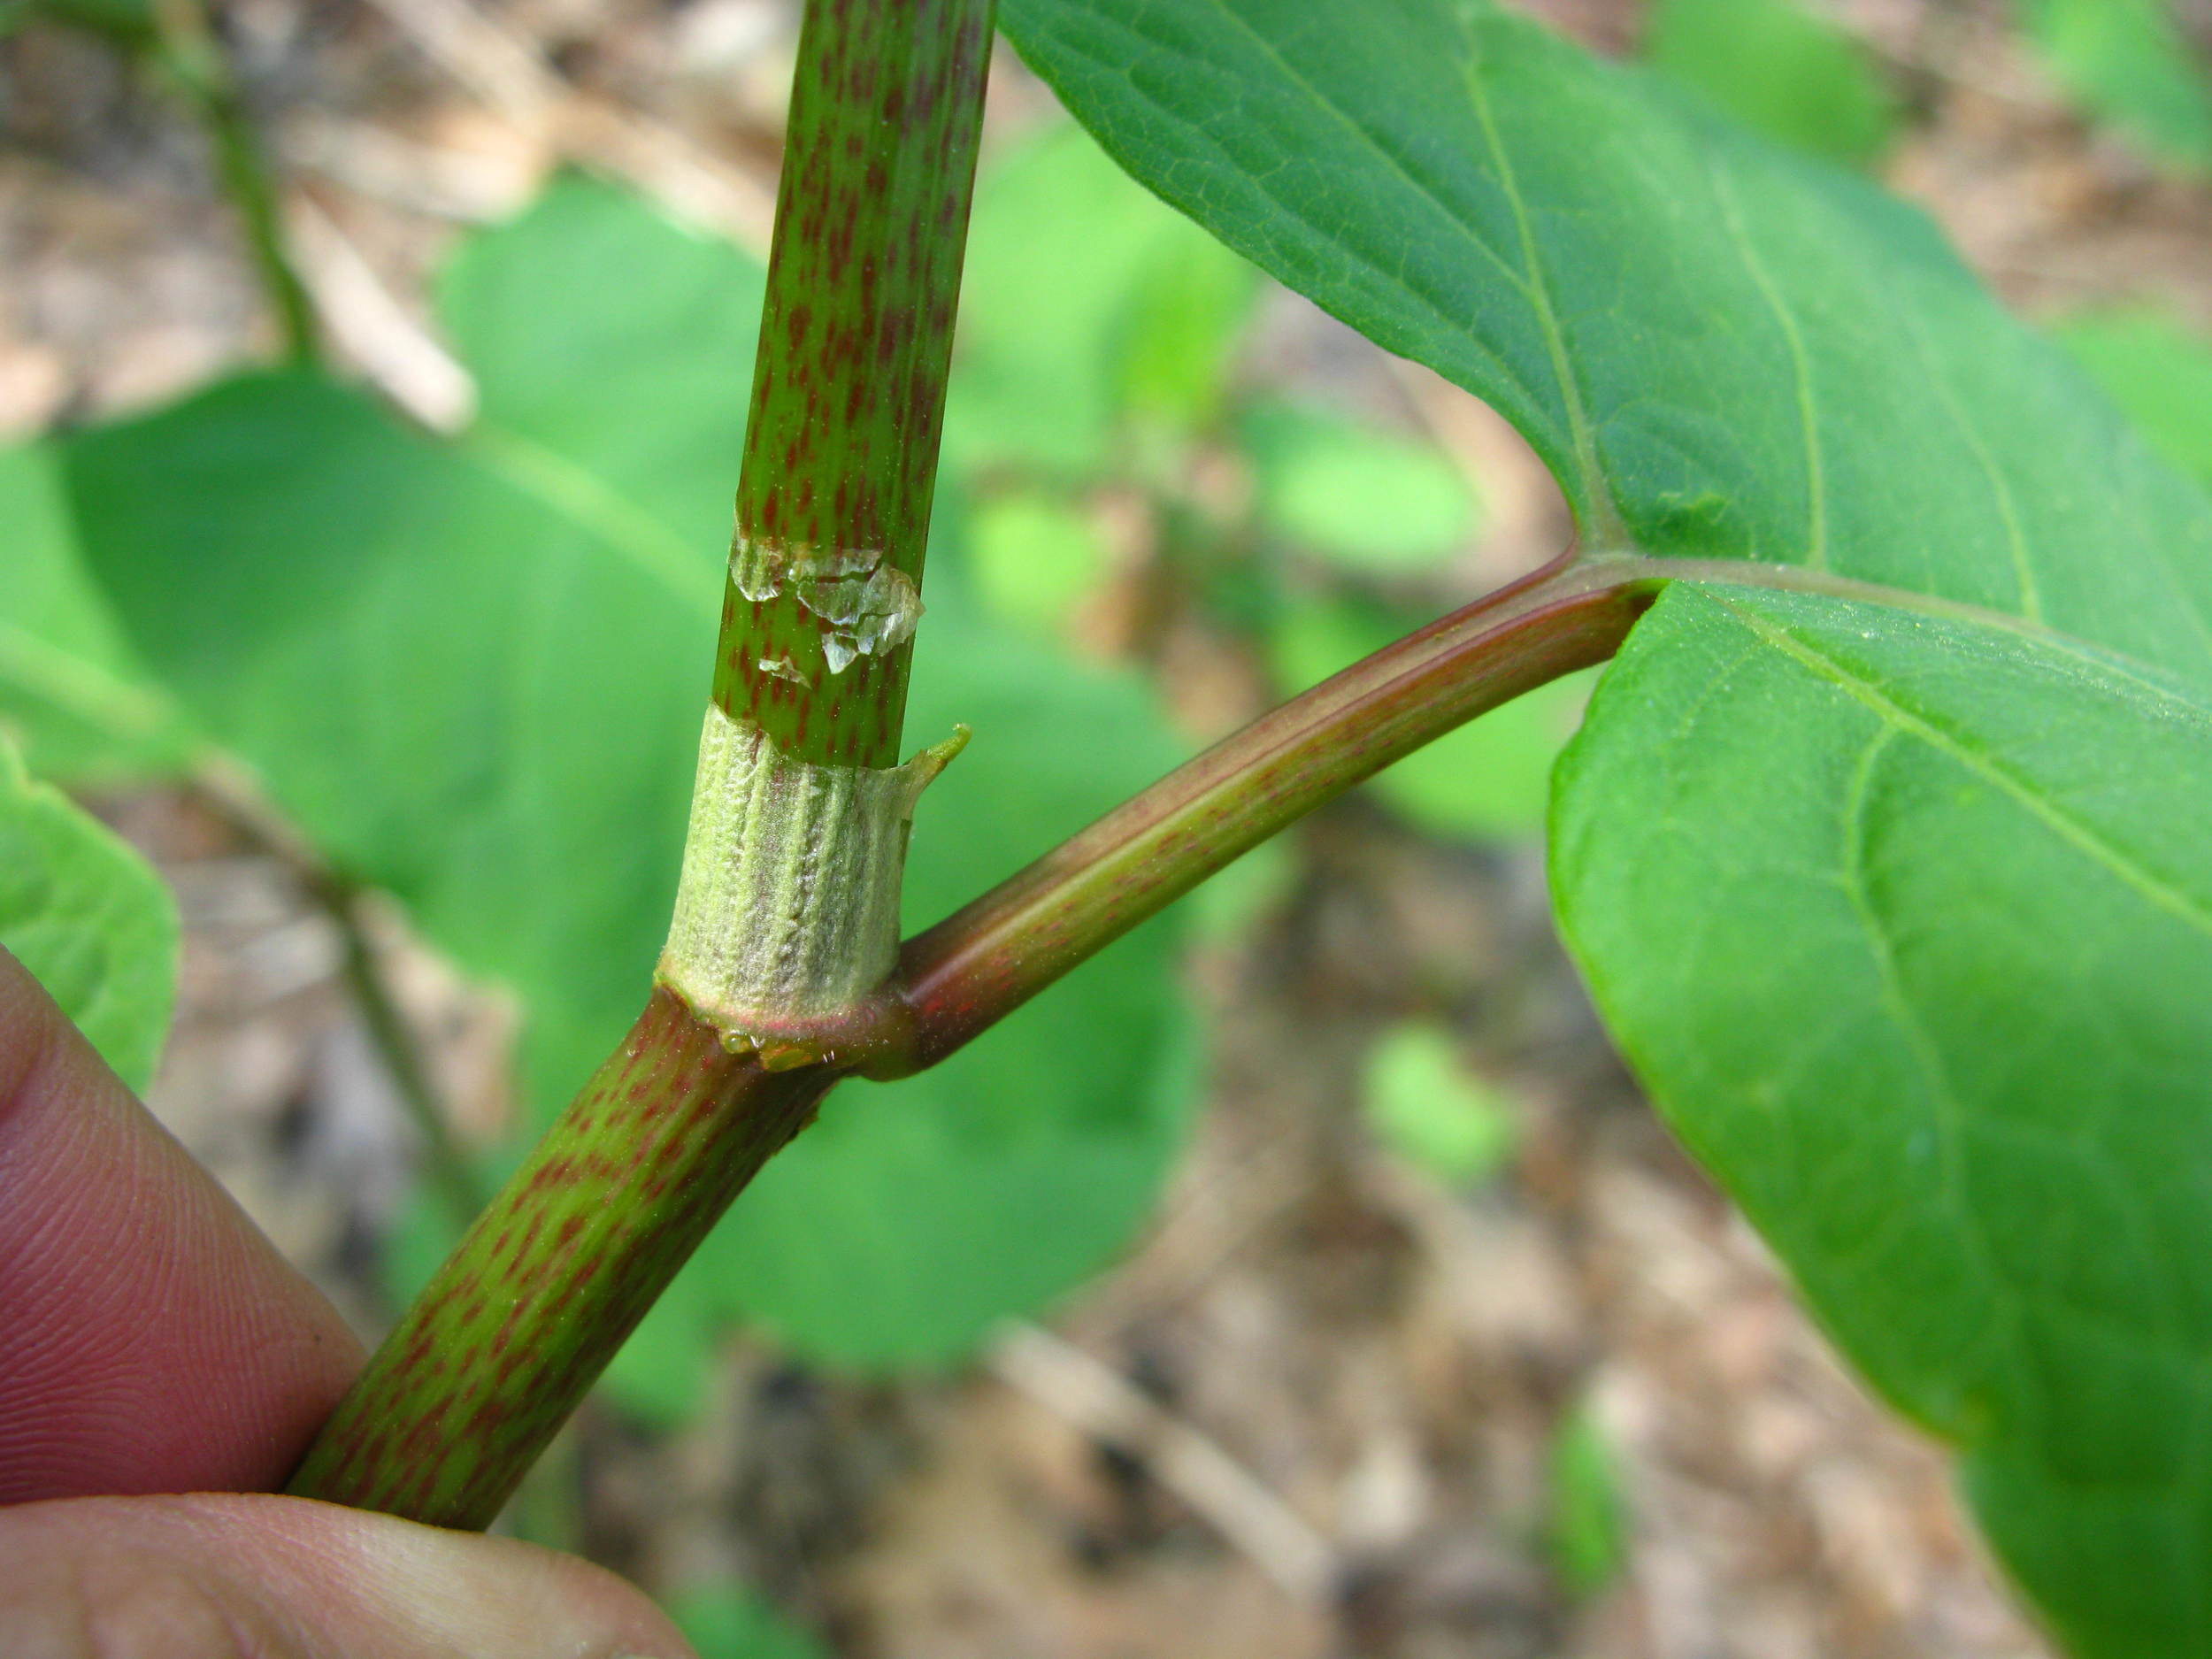 Ocrea - sheath at node typical of Polygonaceae